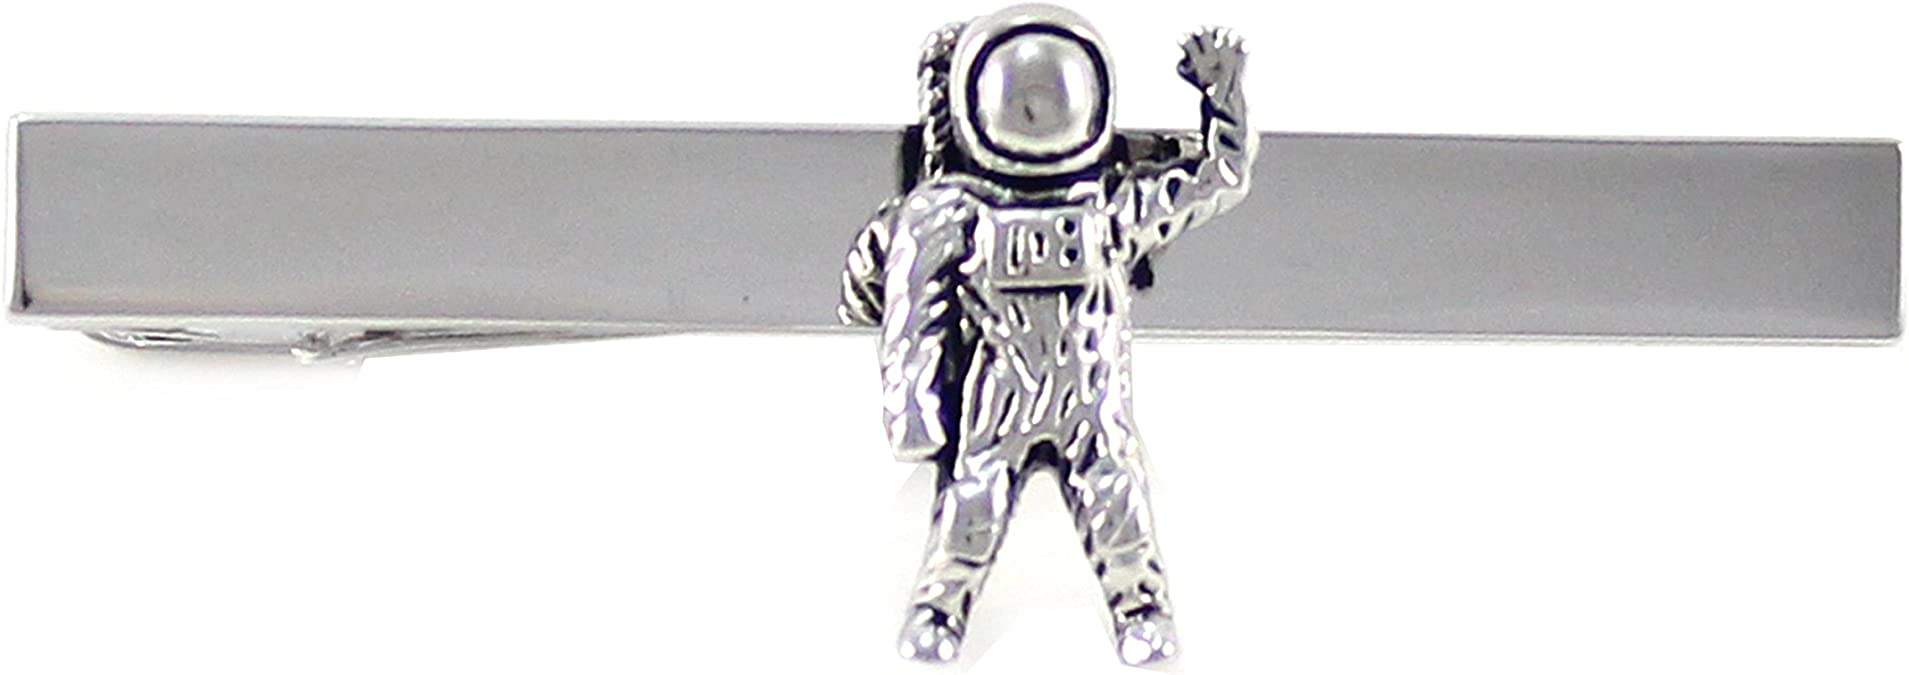 Space Shuttle Square Tie Clips